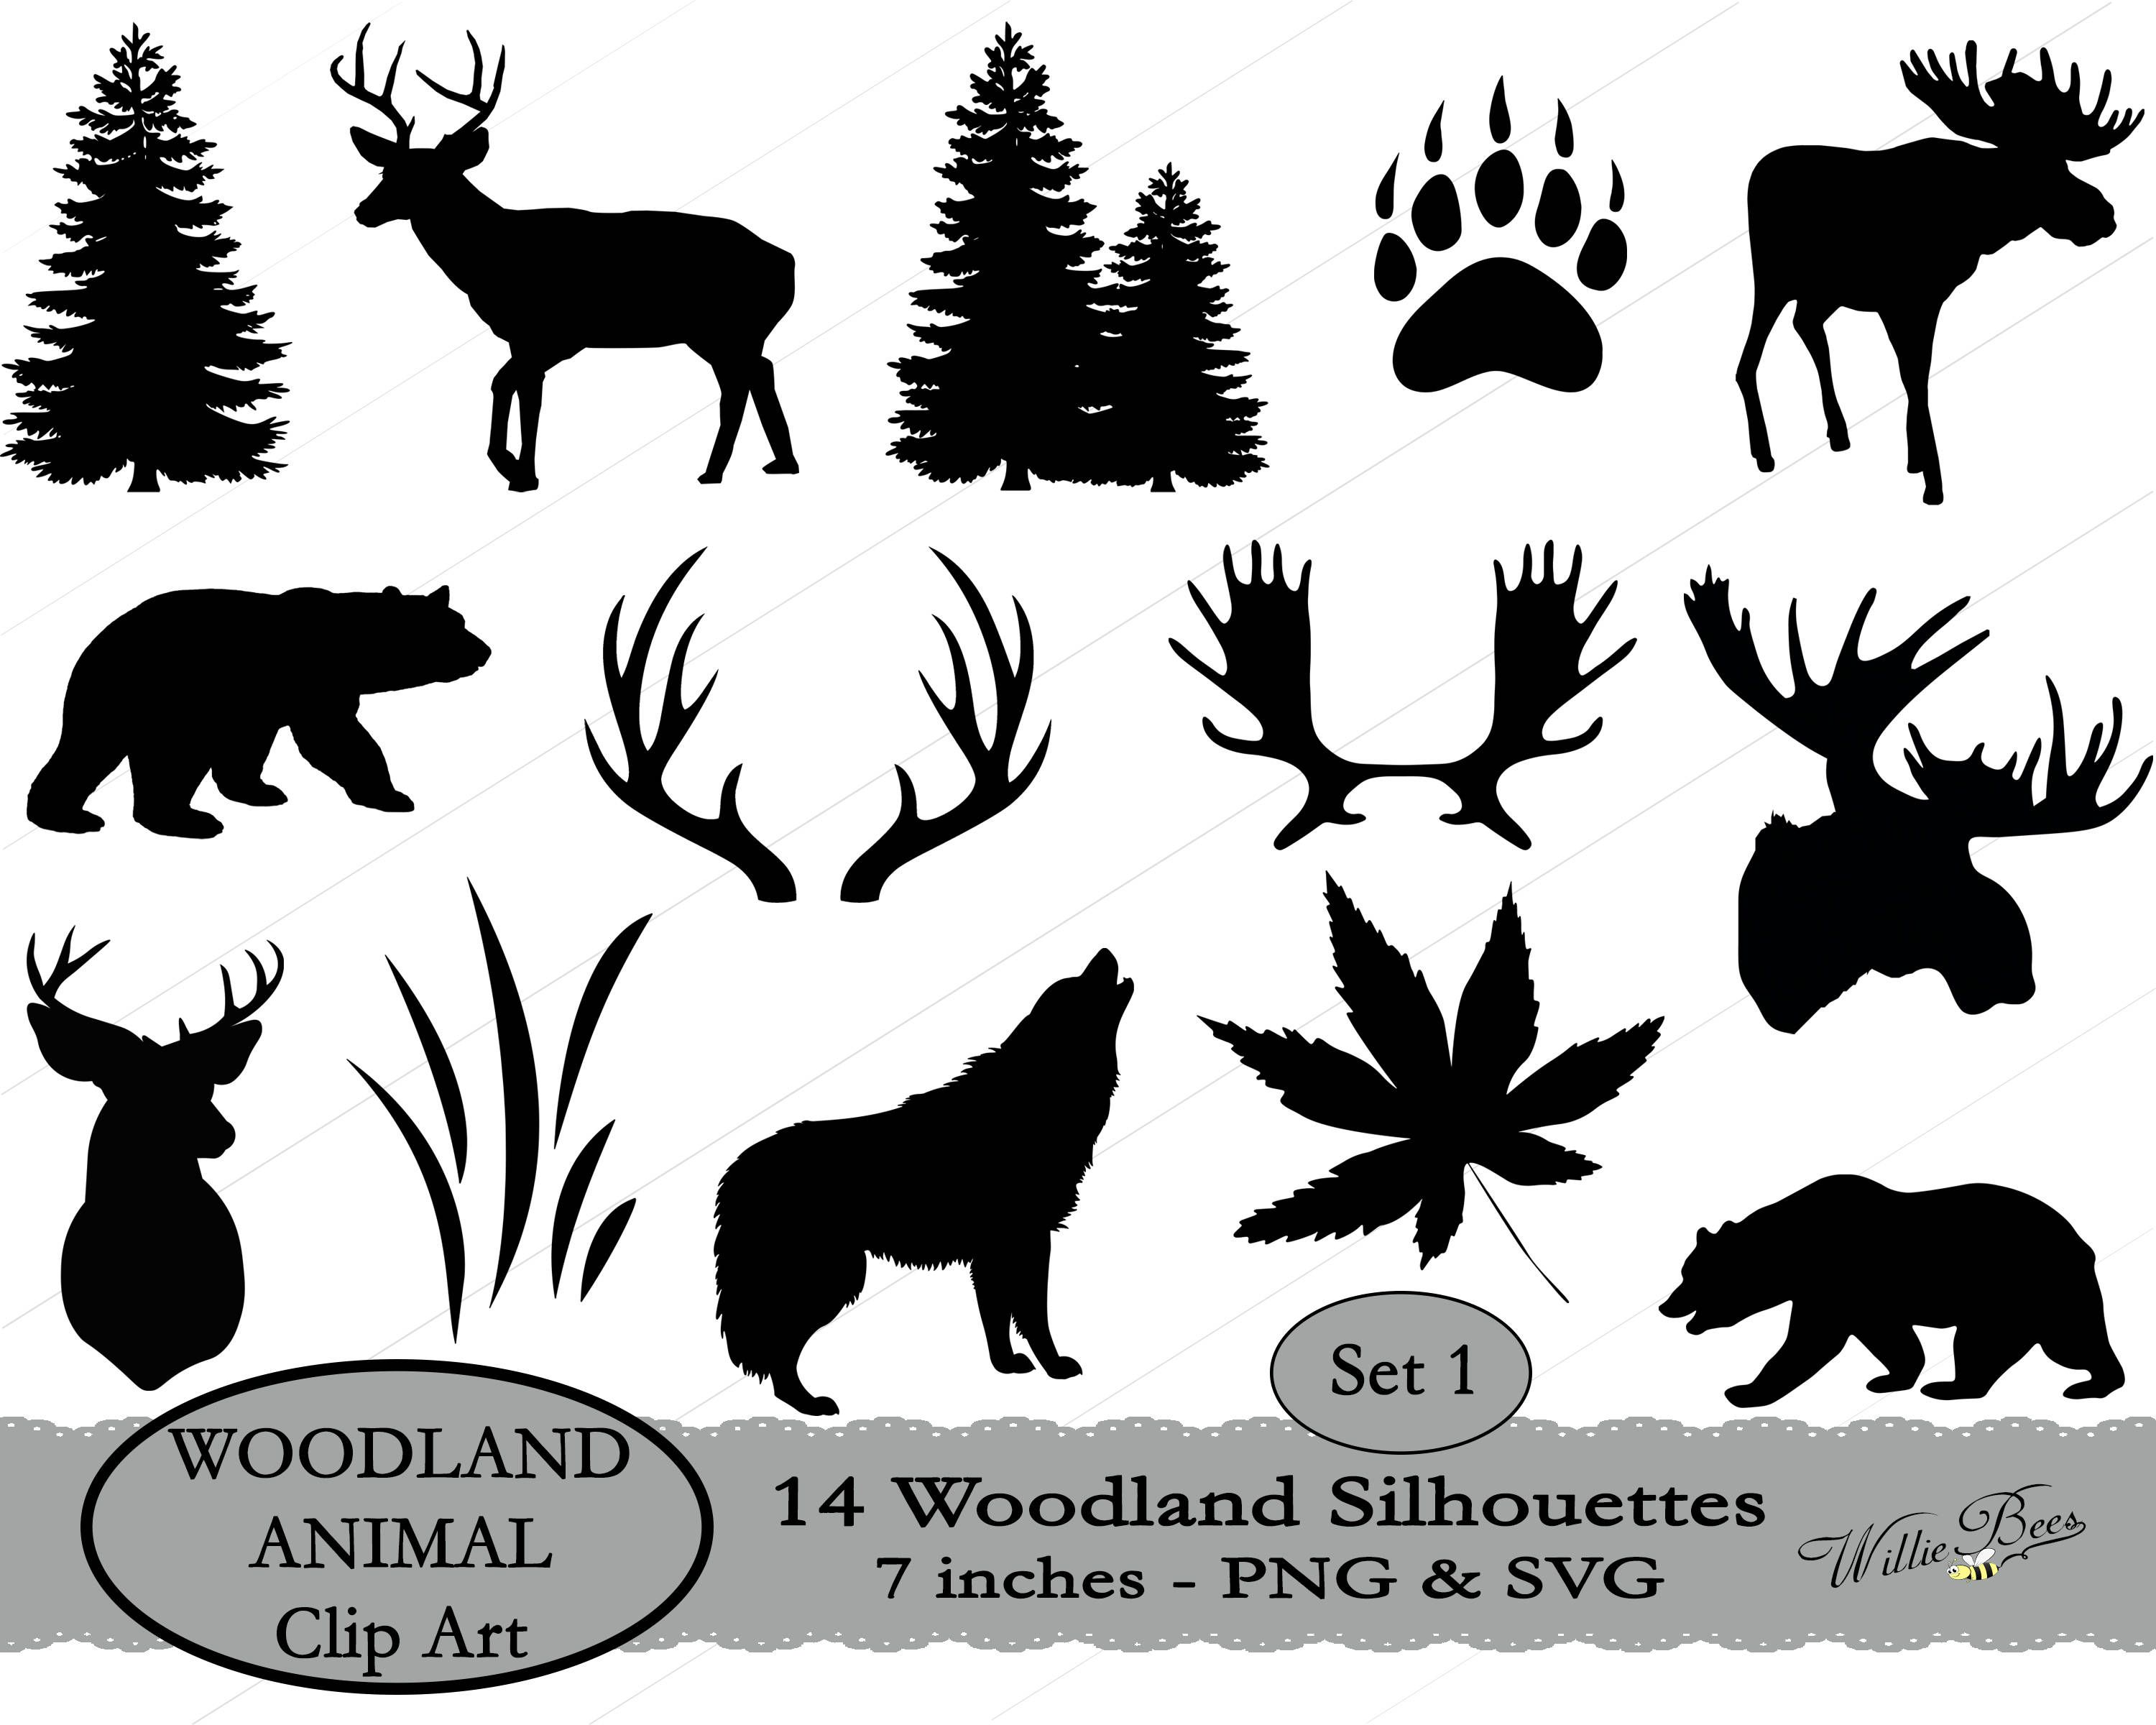 Image Result For Moose Silhouette Png Moose Silhouette Animal Silhouette Woodland Clipart